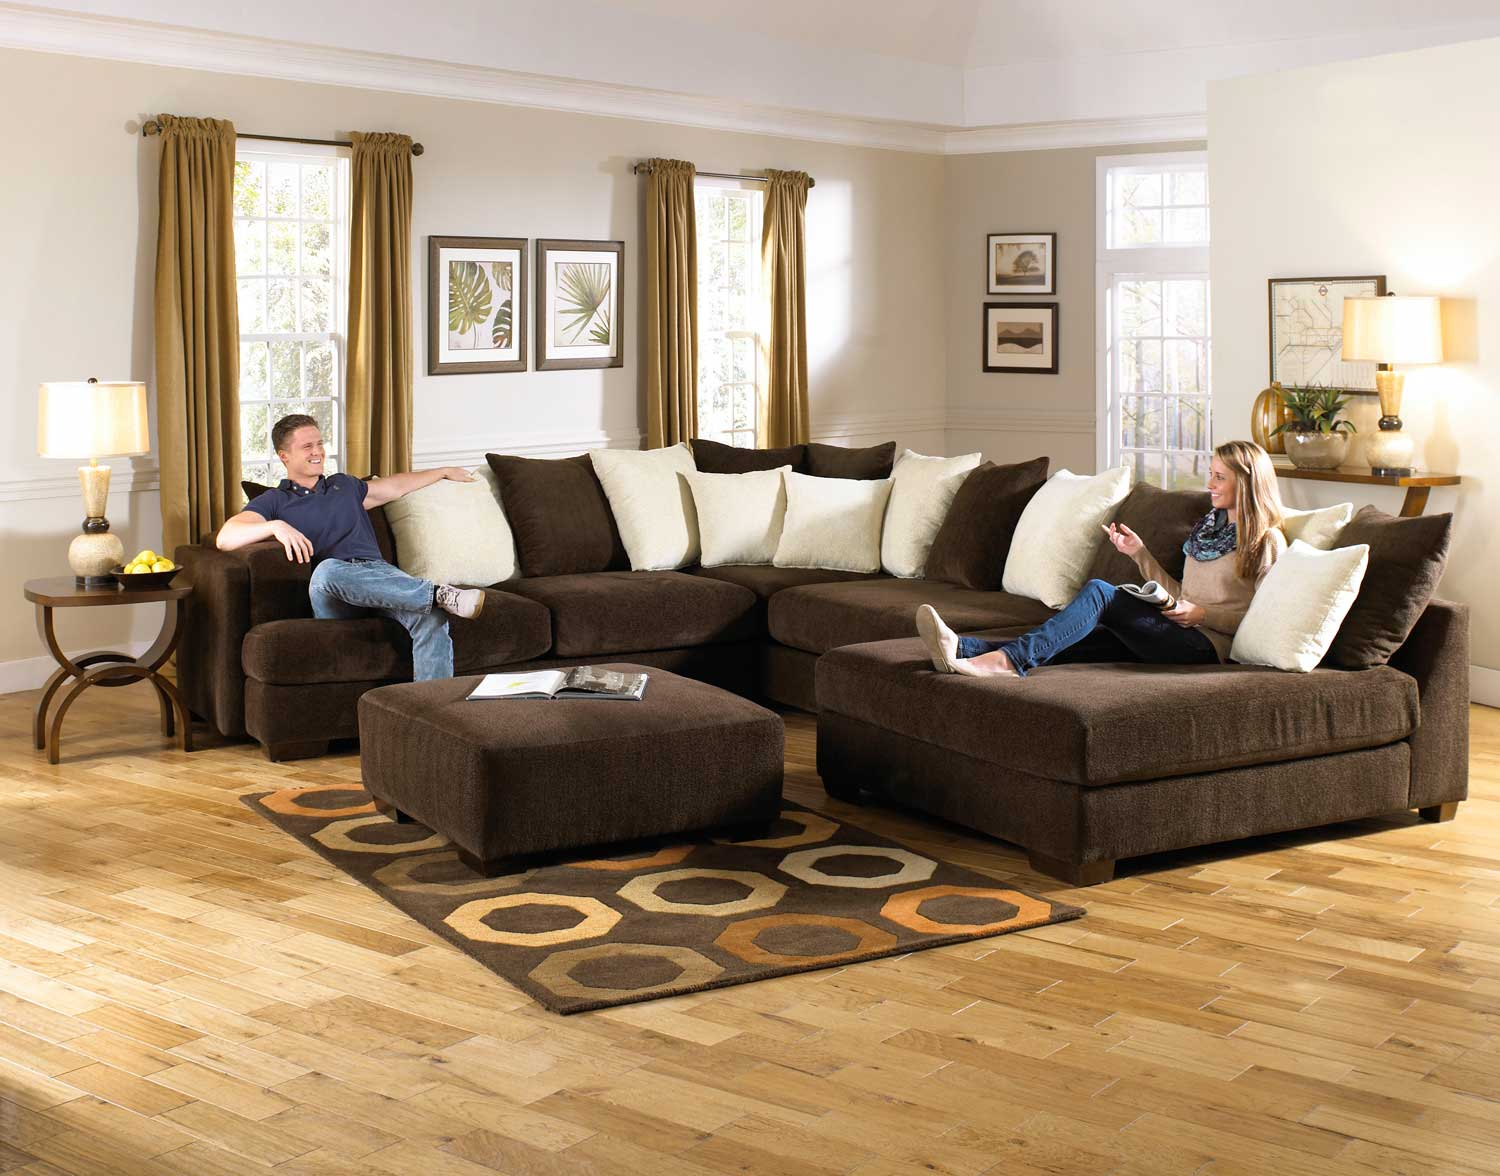 Jackson axis large sectional sofa set chocolate jf 4429 - Sofas marrones decoracion ...